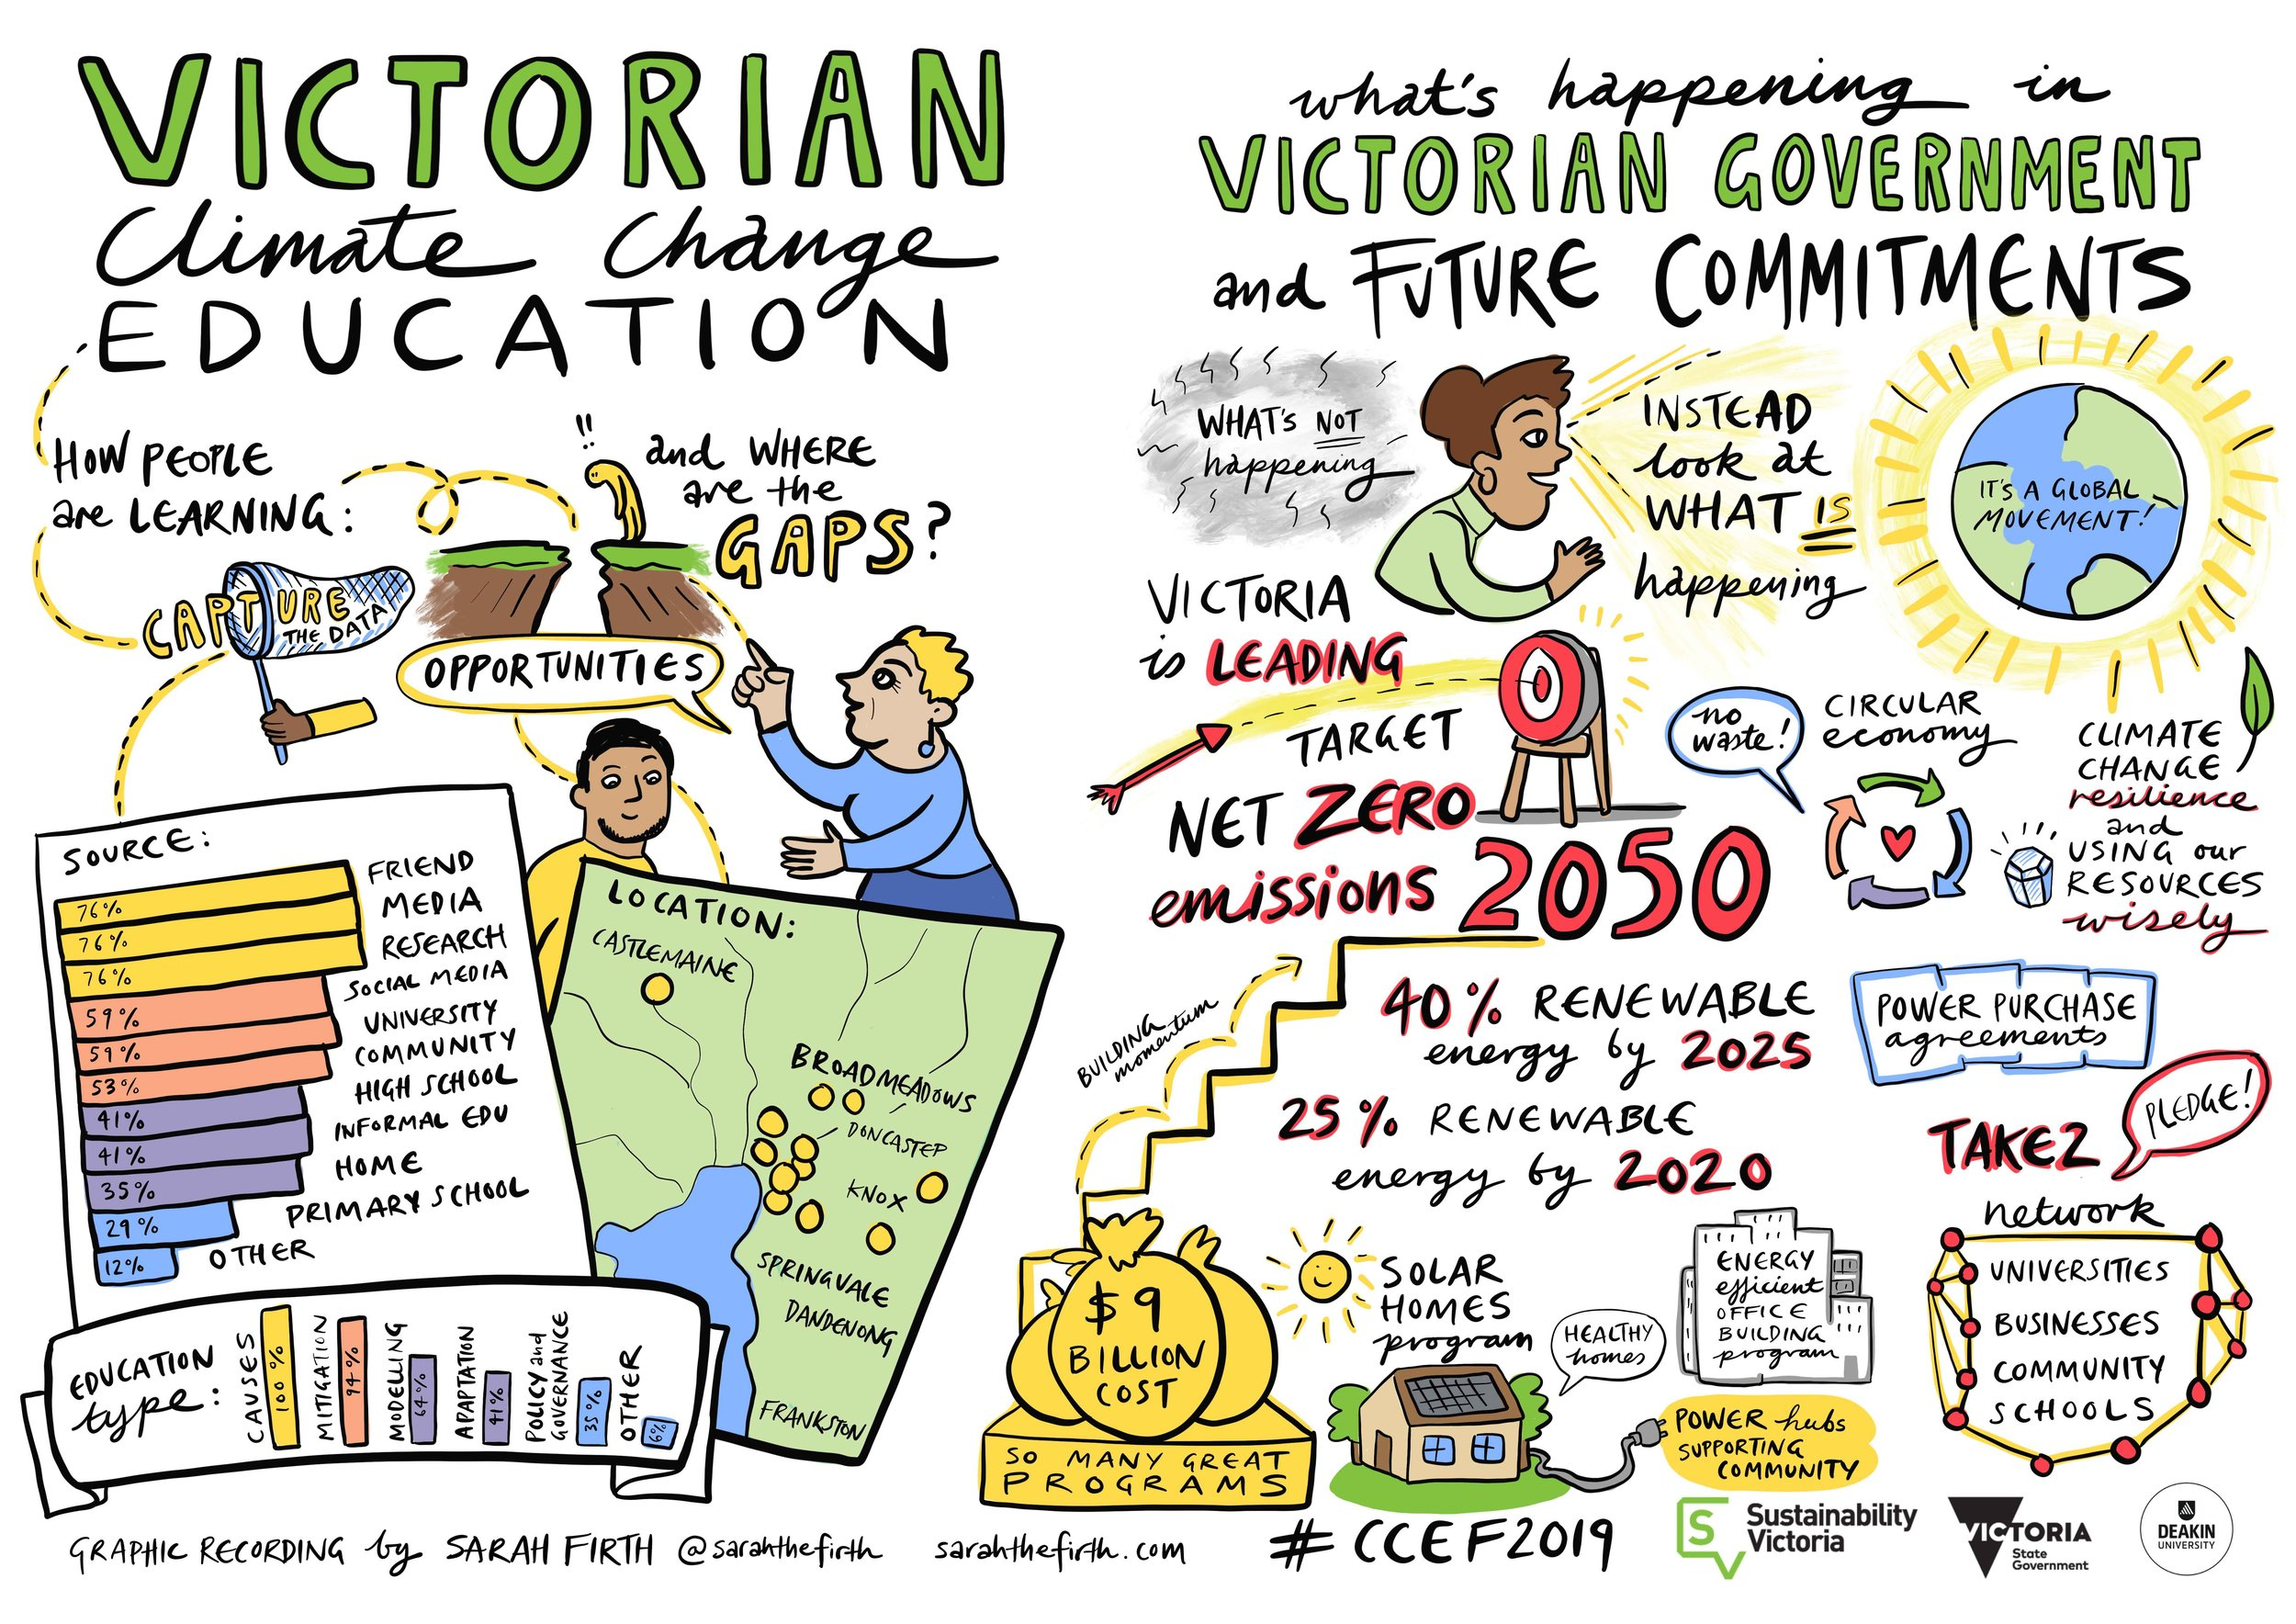 1_victorian_climate_change_education_&_what's_happening_in_victorian_government_and_future_commitments_ SMALL.jpg